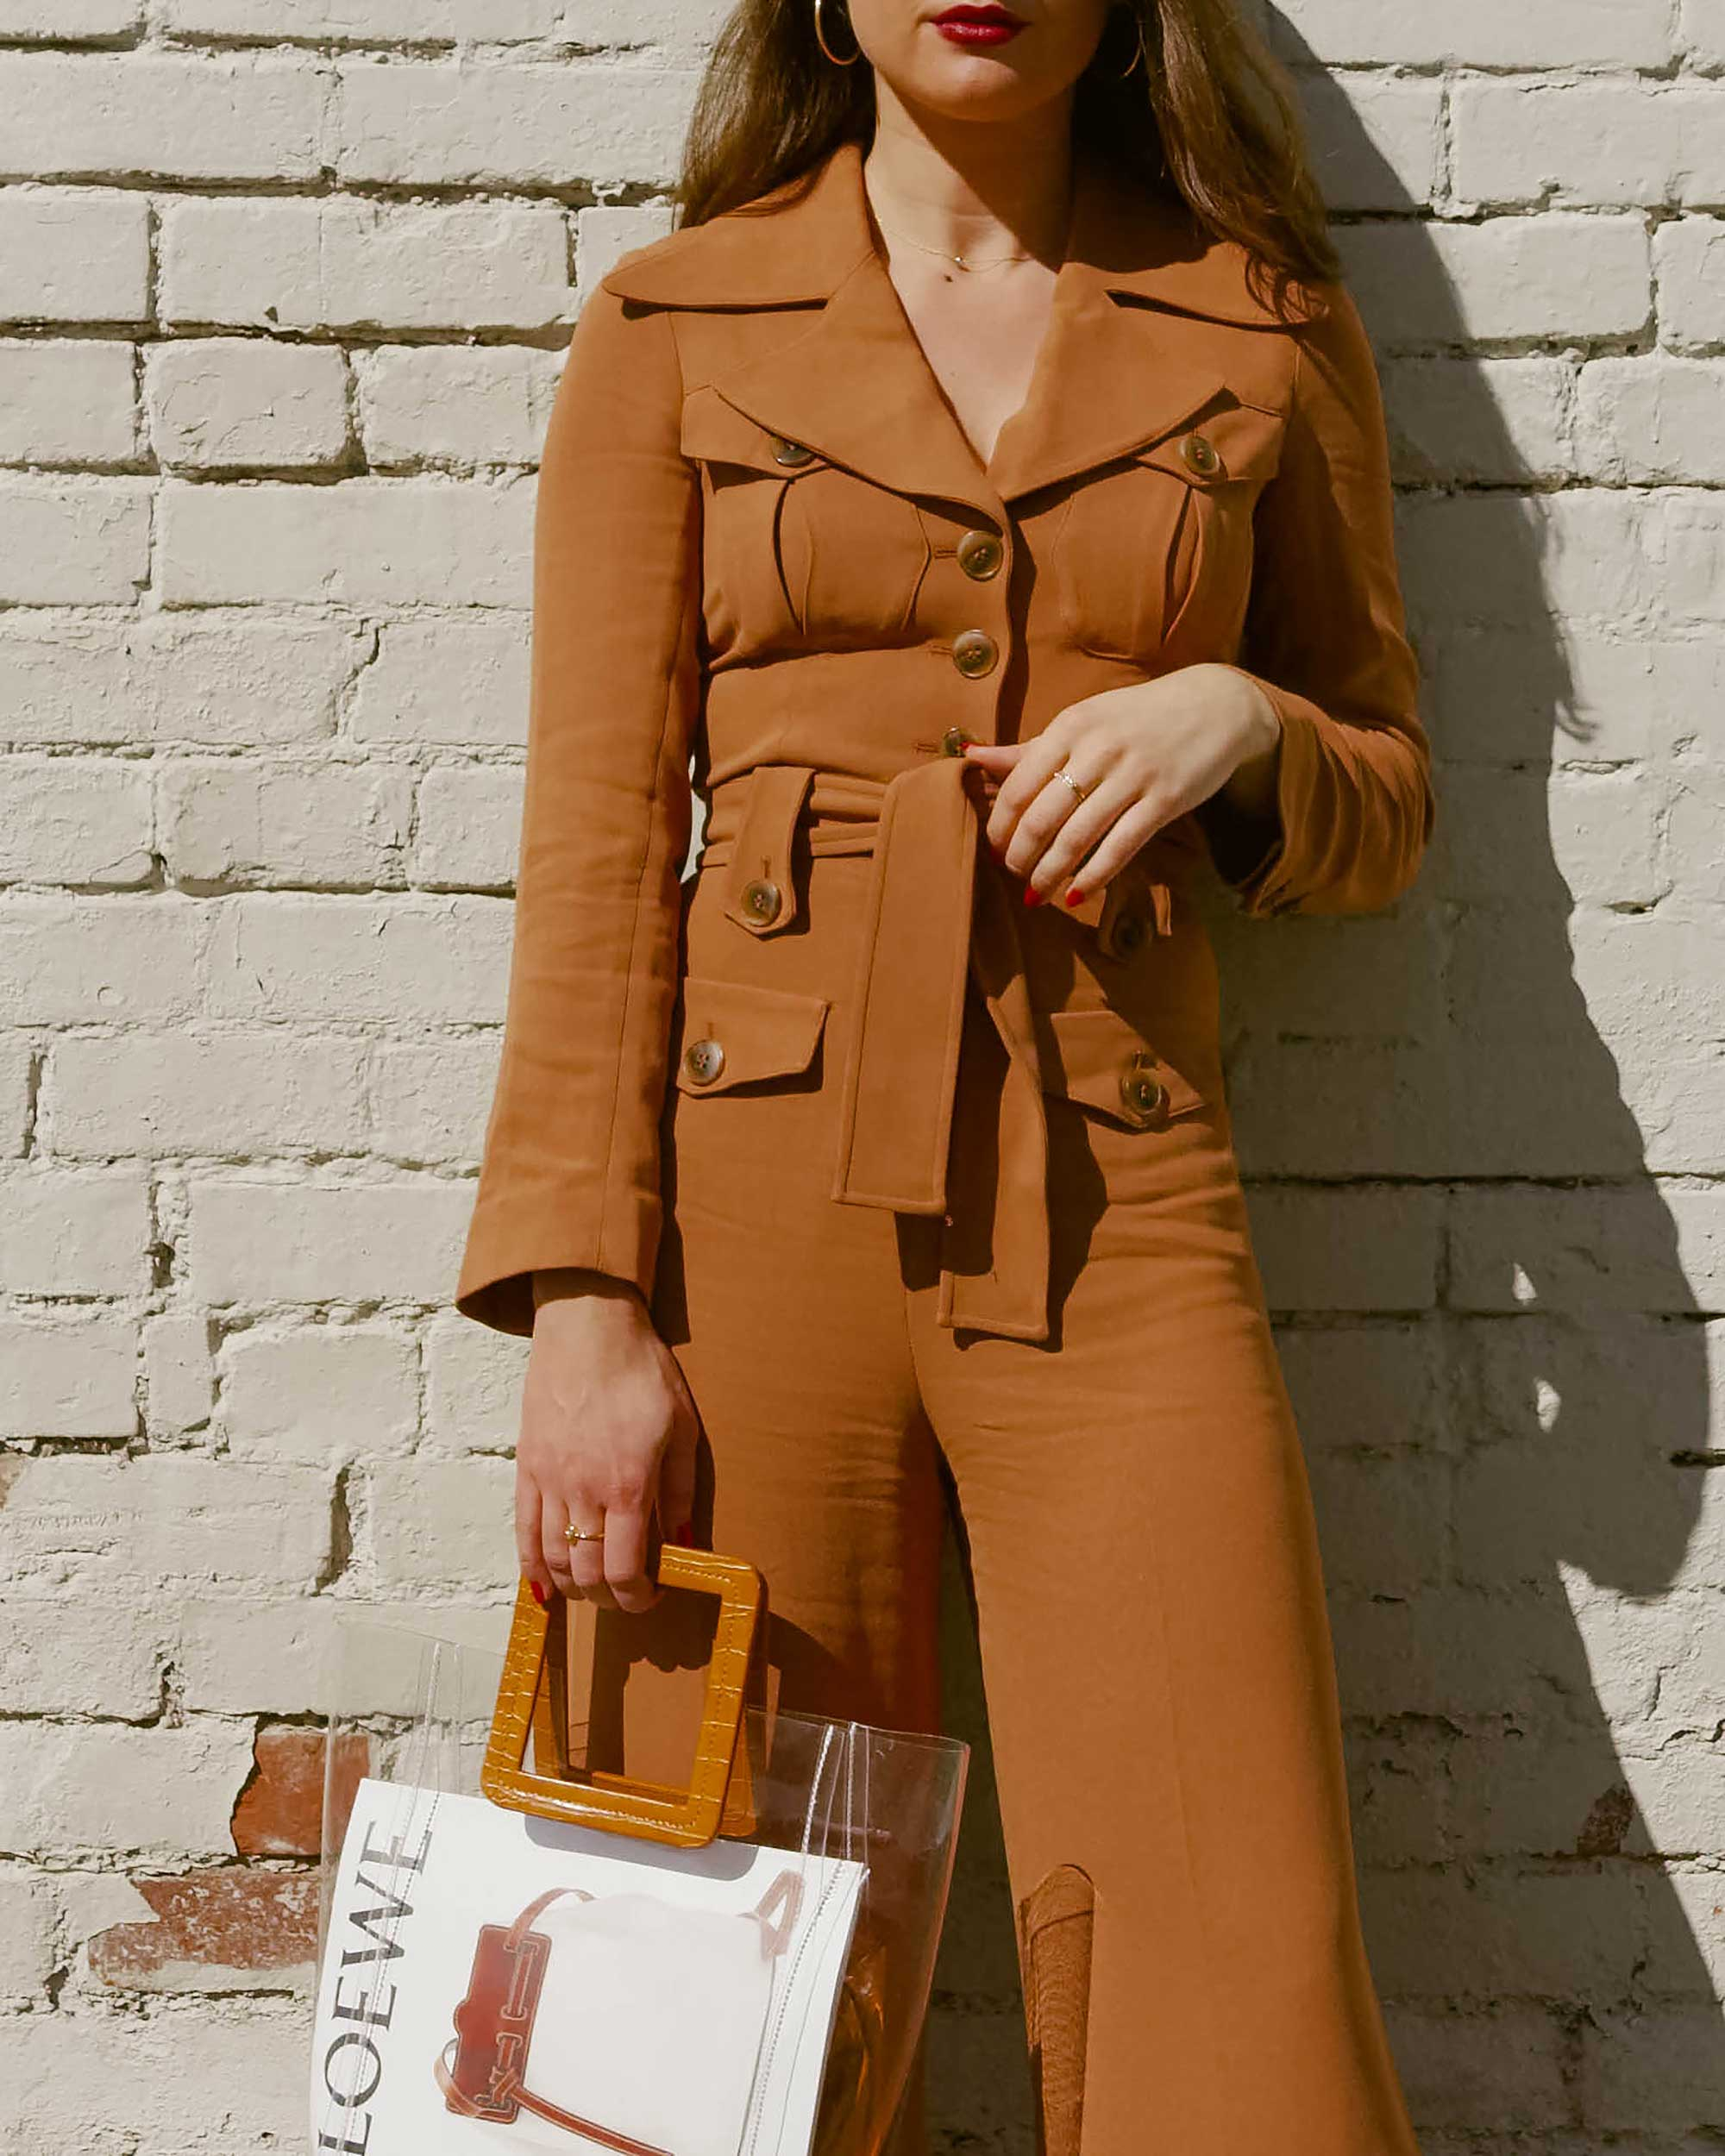 Sarah Butler of Sarah Styles Seattle wears & Other Stories Long Sleeve Belted Camel Jumpsuit and Staud Transparent Handbag in Seattle | @sarahchristine, Seattle Blogger - 5.jpg